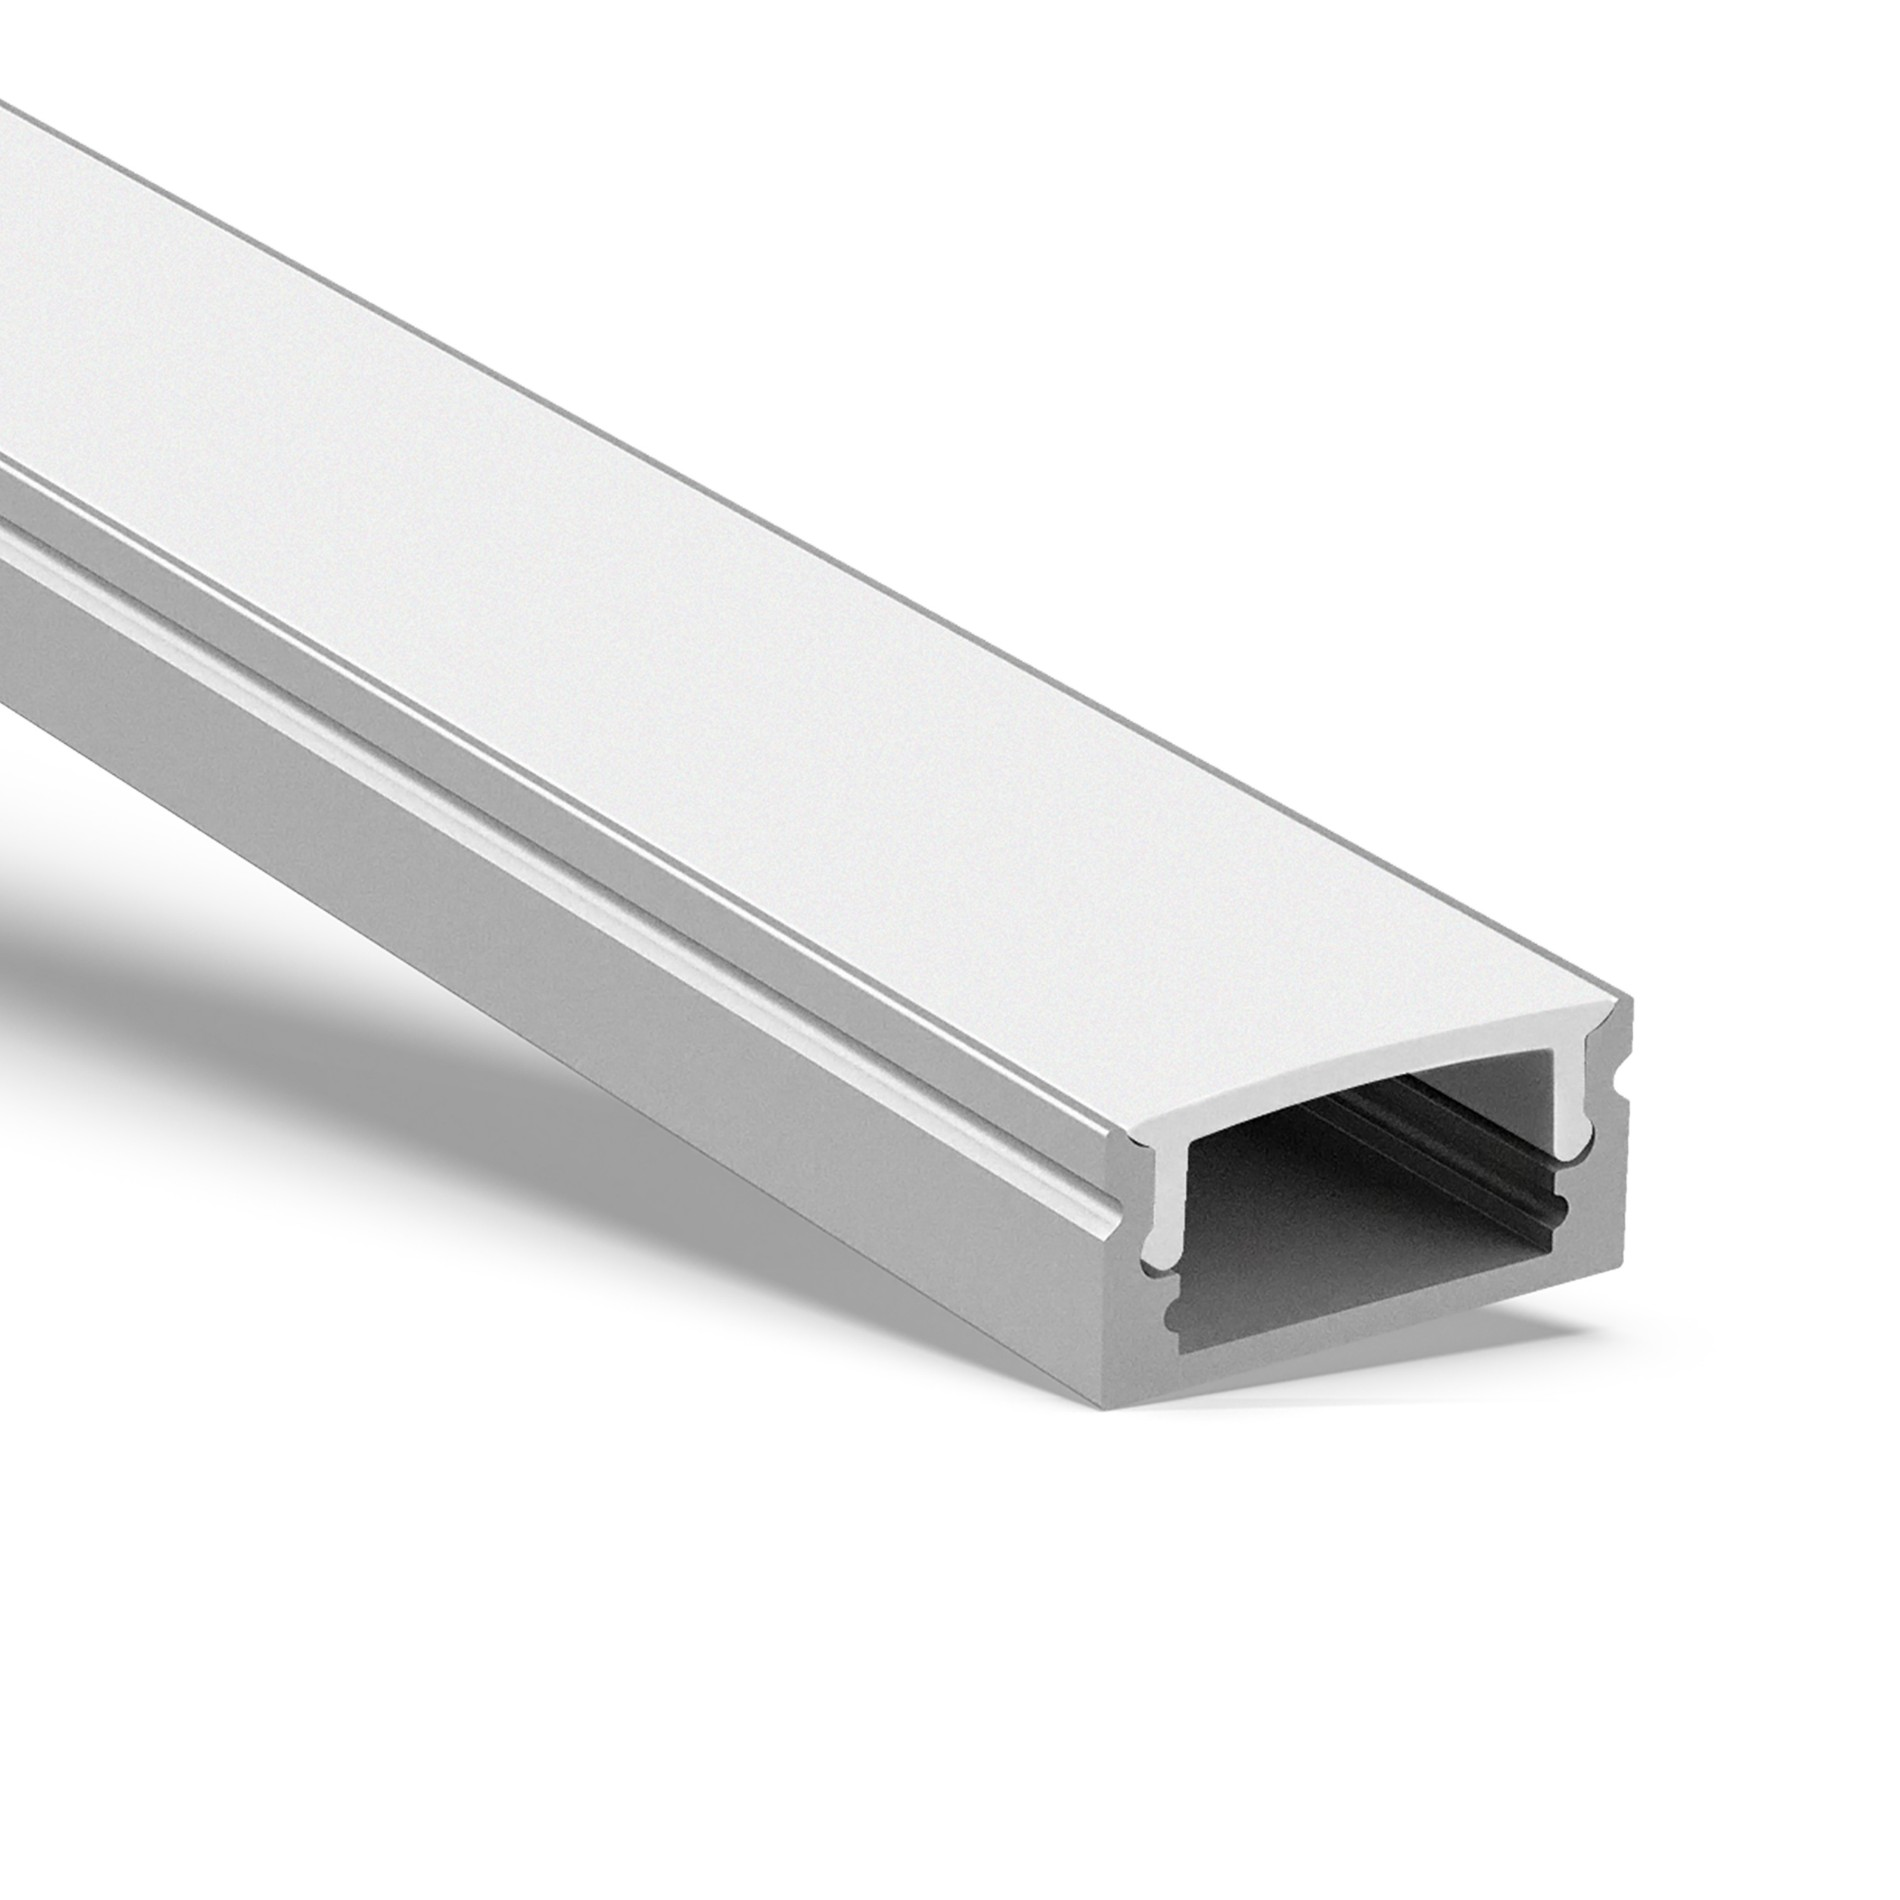 AS1 Thin and best seller square led profile 17x8.5mm Manufacturers, AS1 Thin and best seller square led profile 17x8.5mm Factory, Supply AS1 Thin and best seller square led profile 17x8.5mm